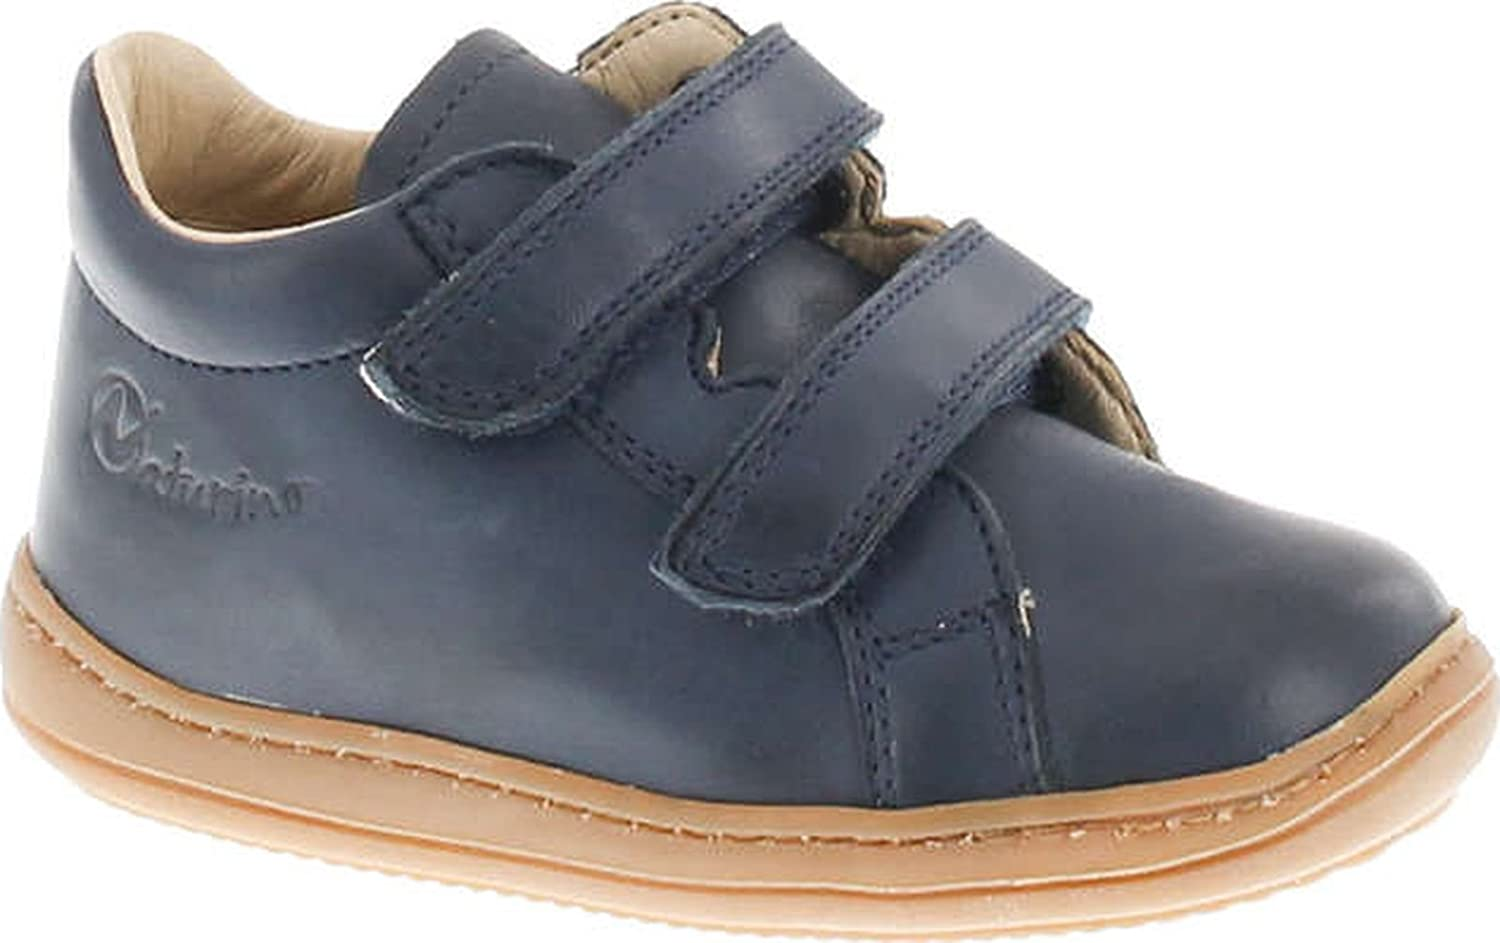 Naturino 4677 Boys Leather First Walker Casual Shoes